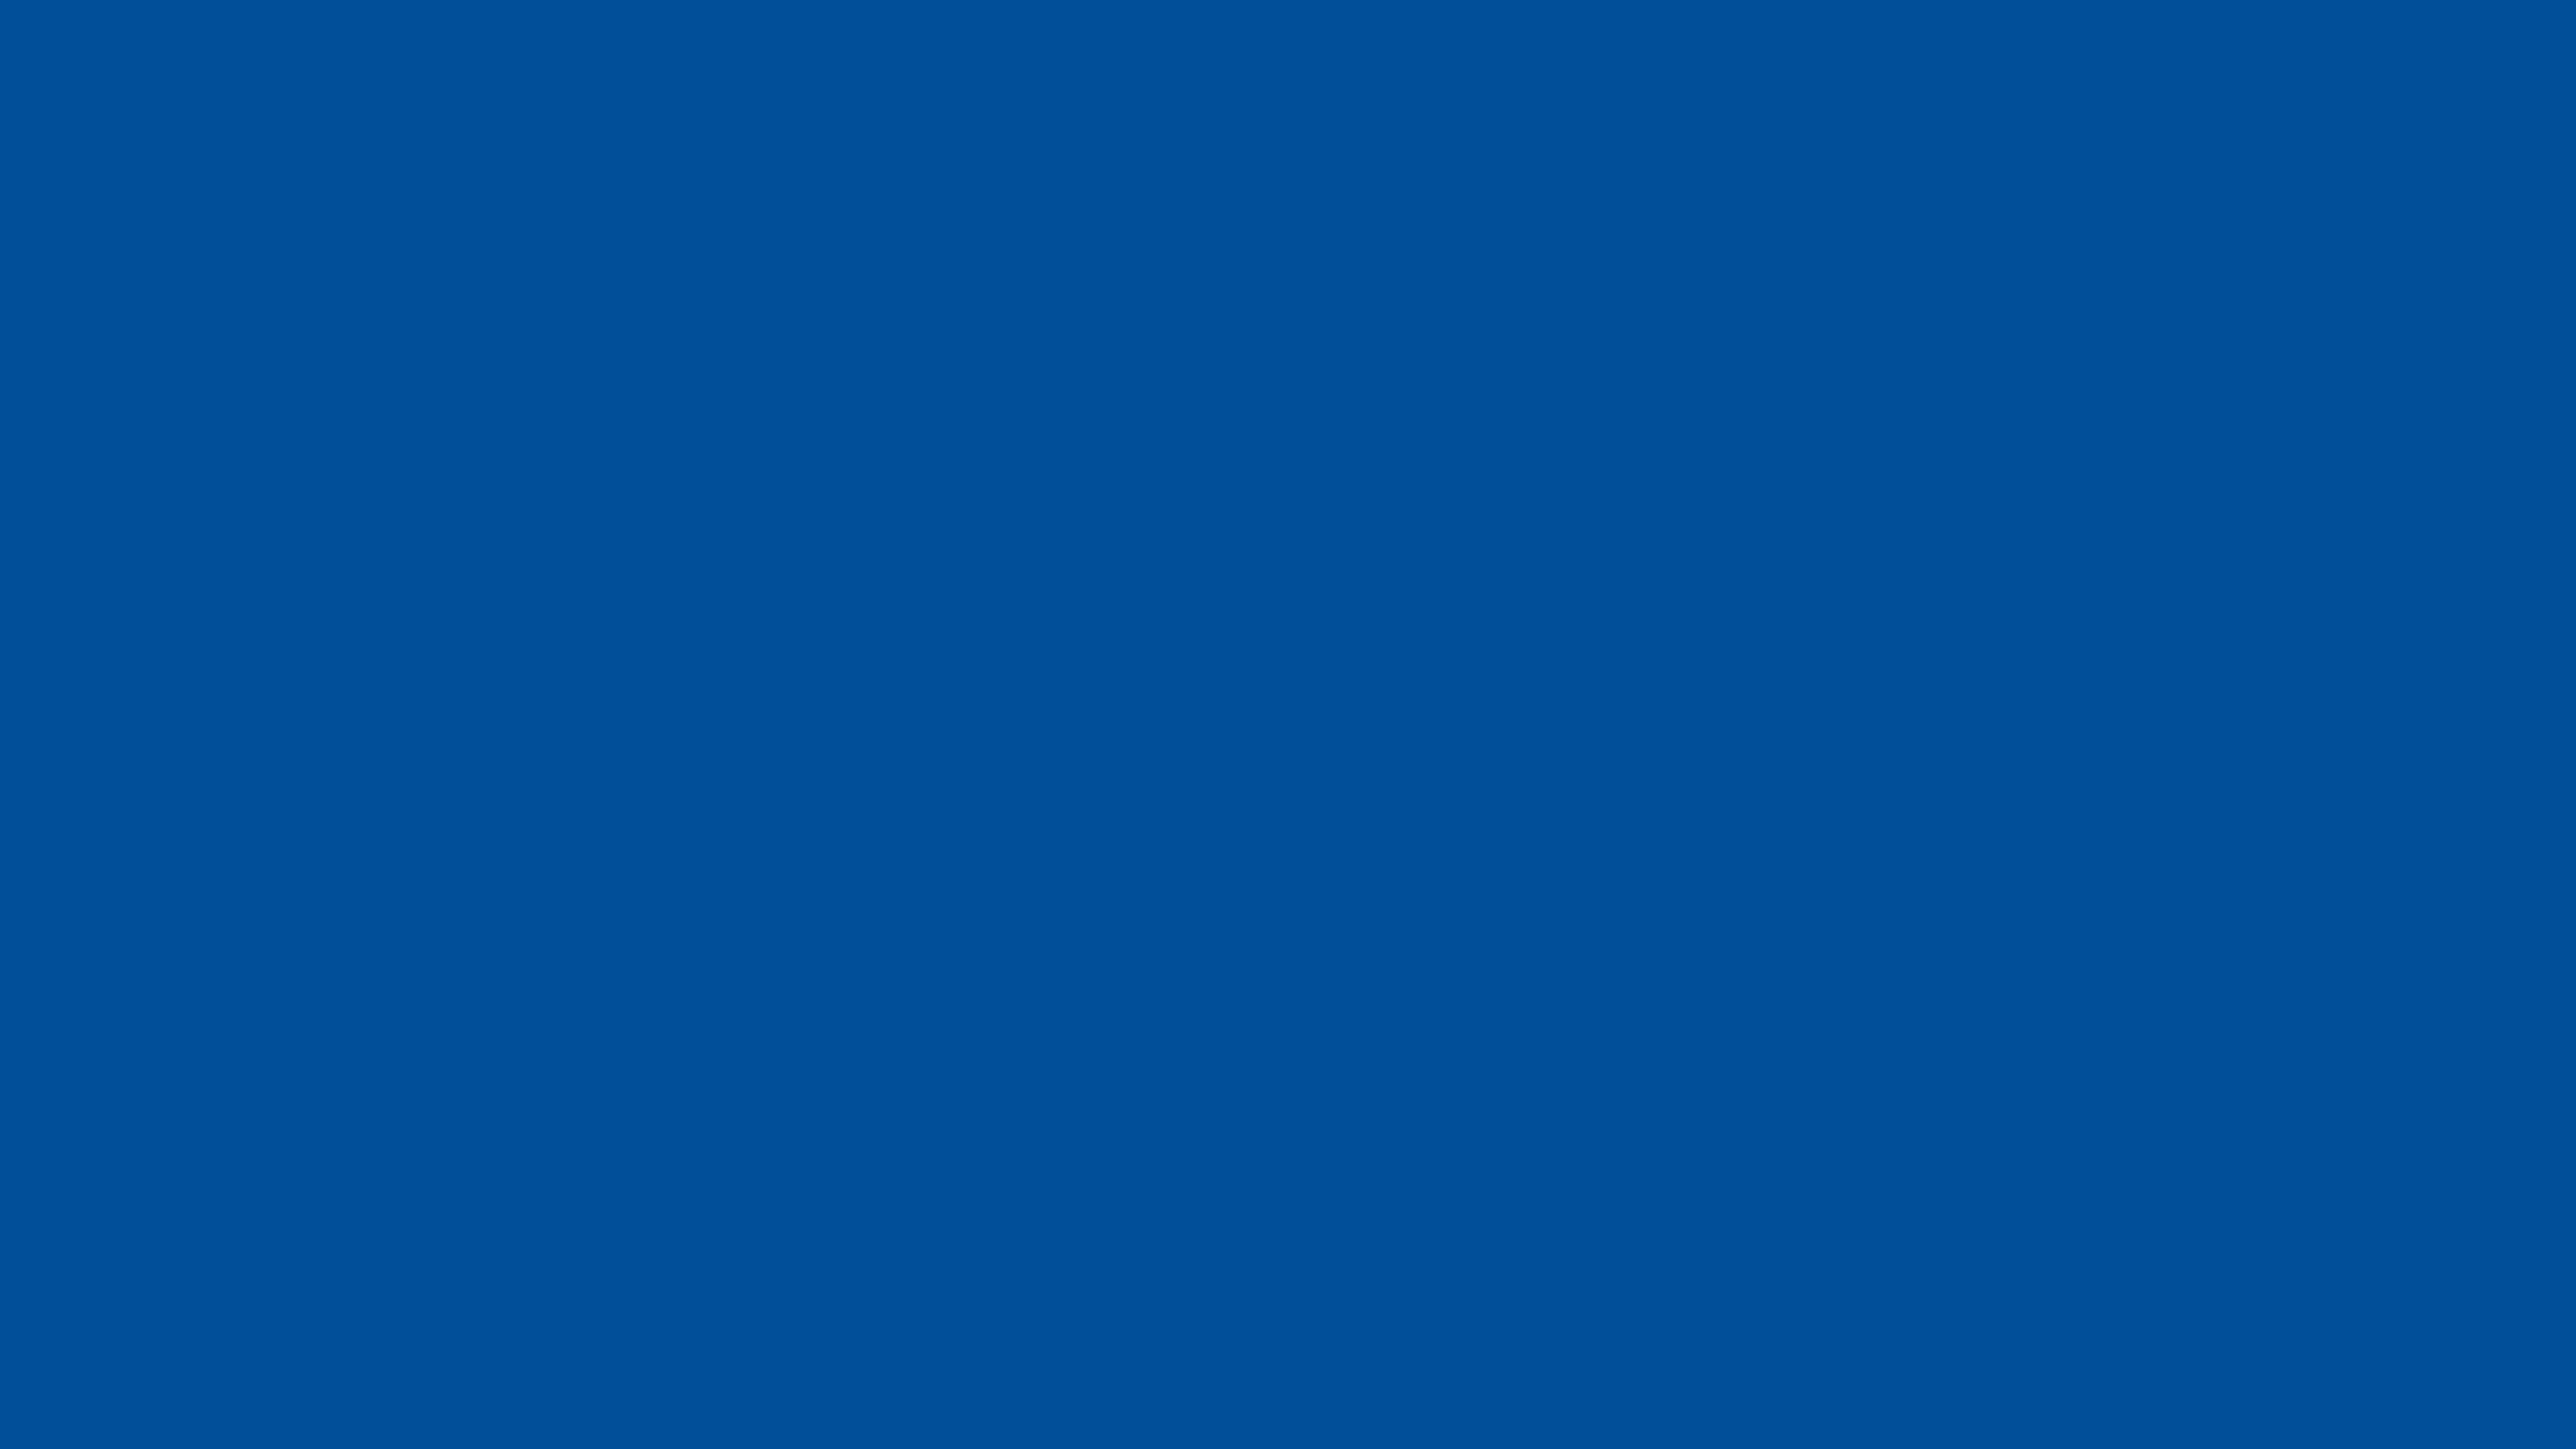 5120x2880 USAFA Blue Solid Color Background